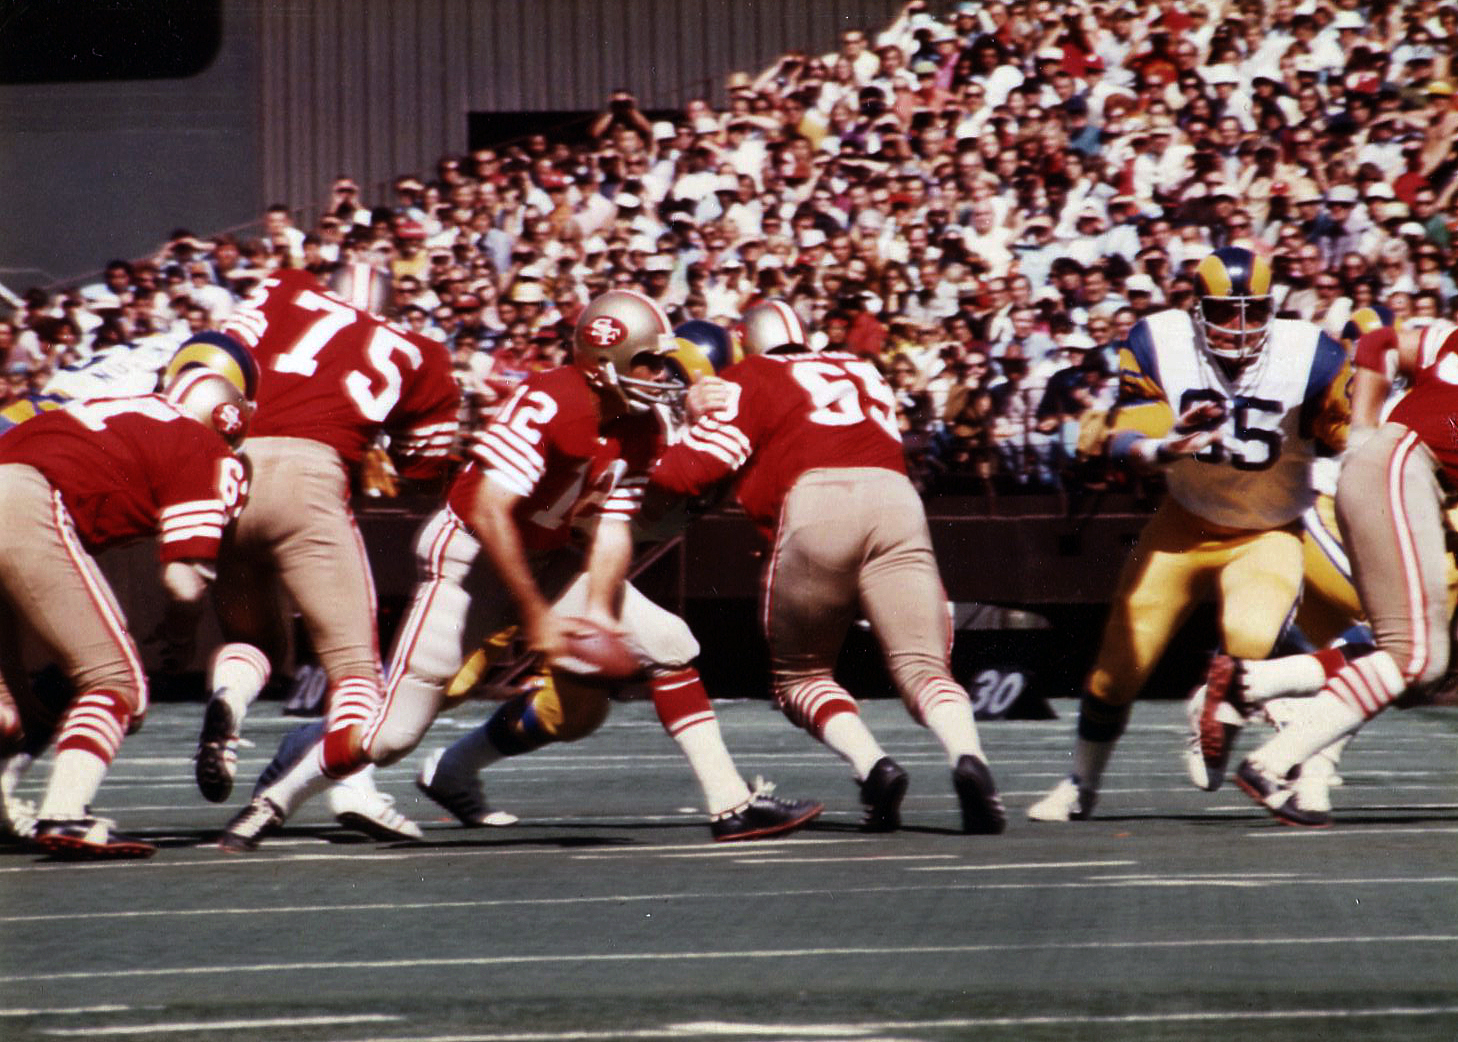 49er QB John Brodie (12) pitches out against the LA Rams in 40-13 loss.